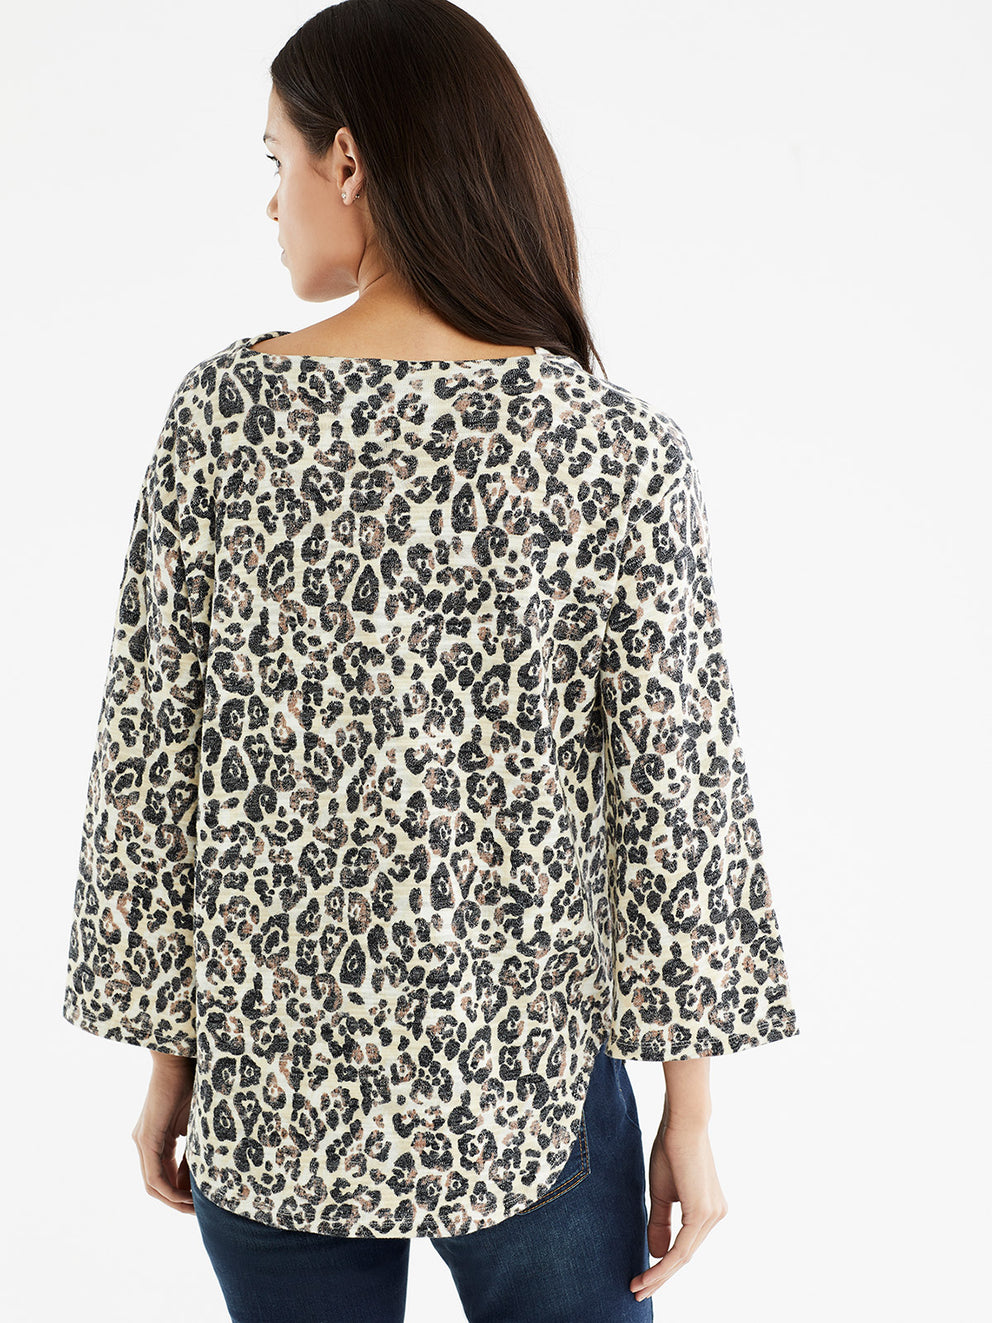 The Jones New York 3/4-Sleeve Drape Neck Top in color Stormy Leopard Print - Image Position 3